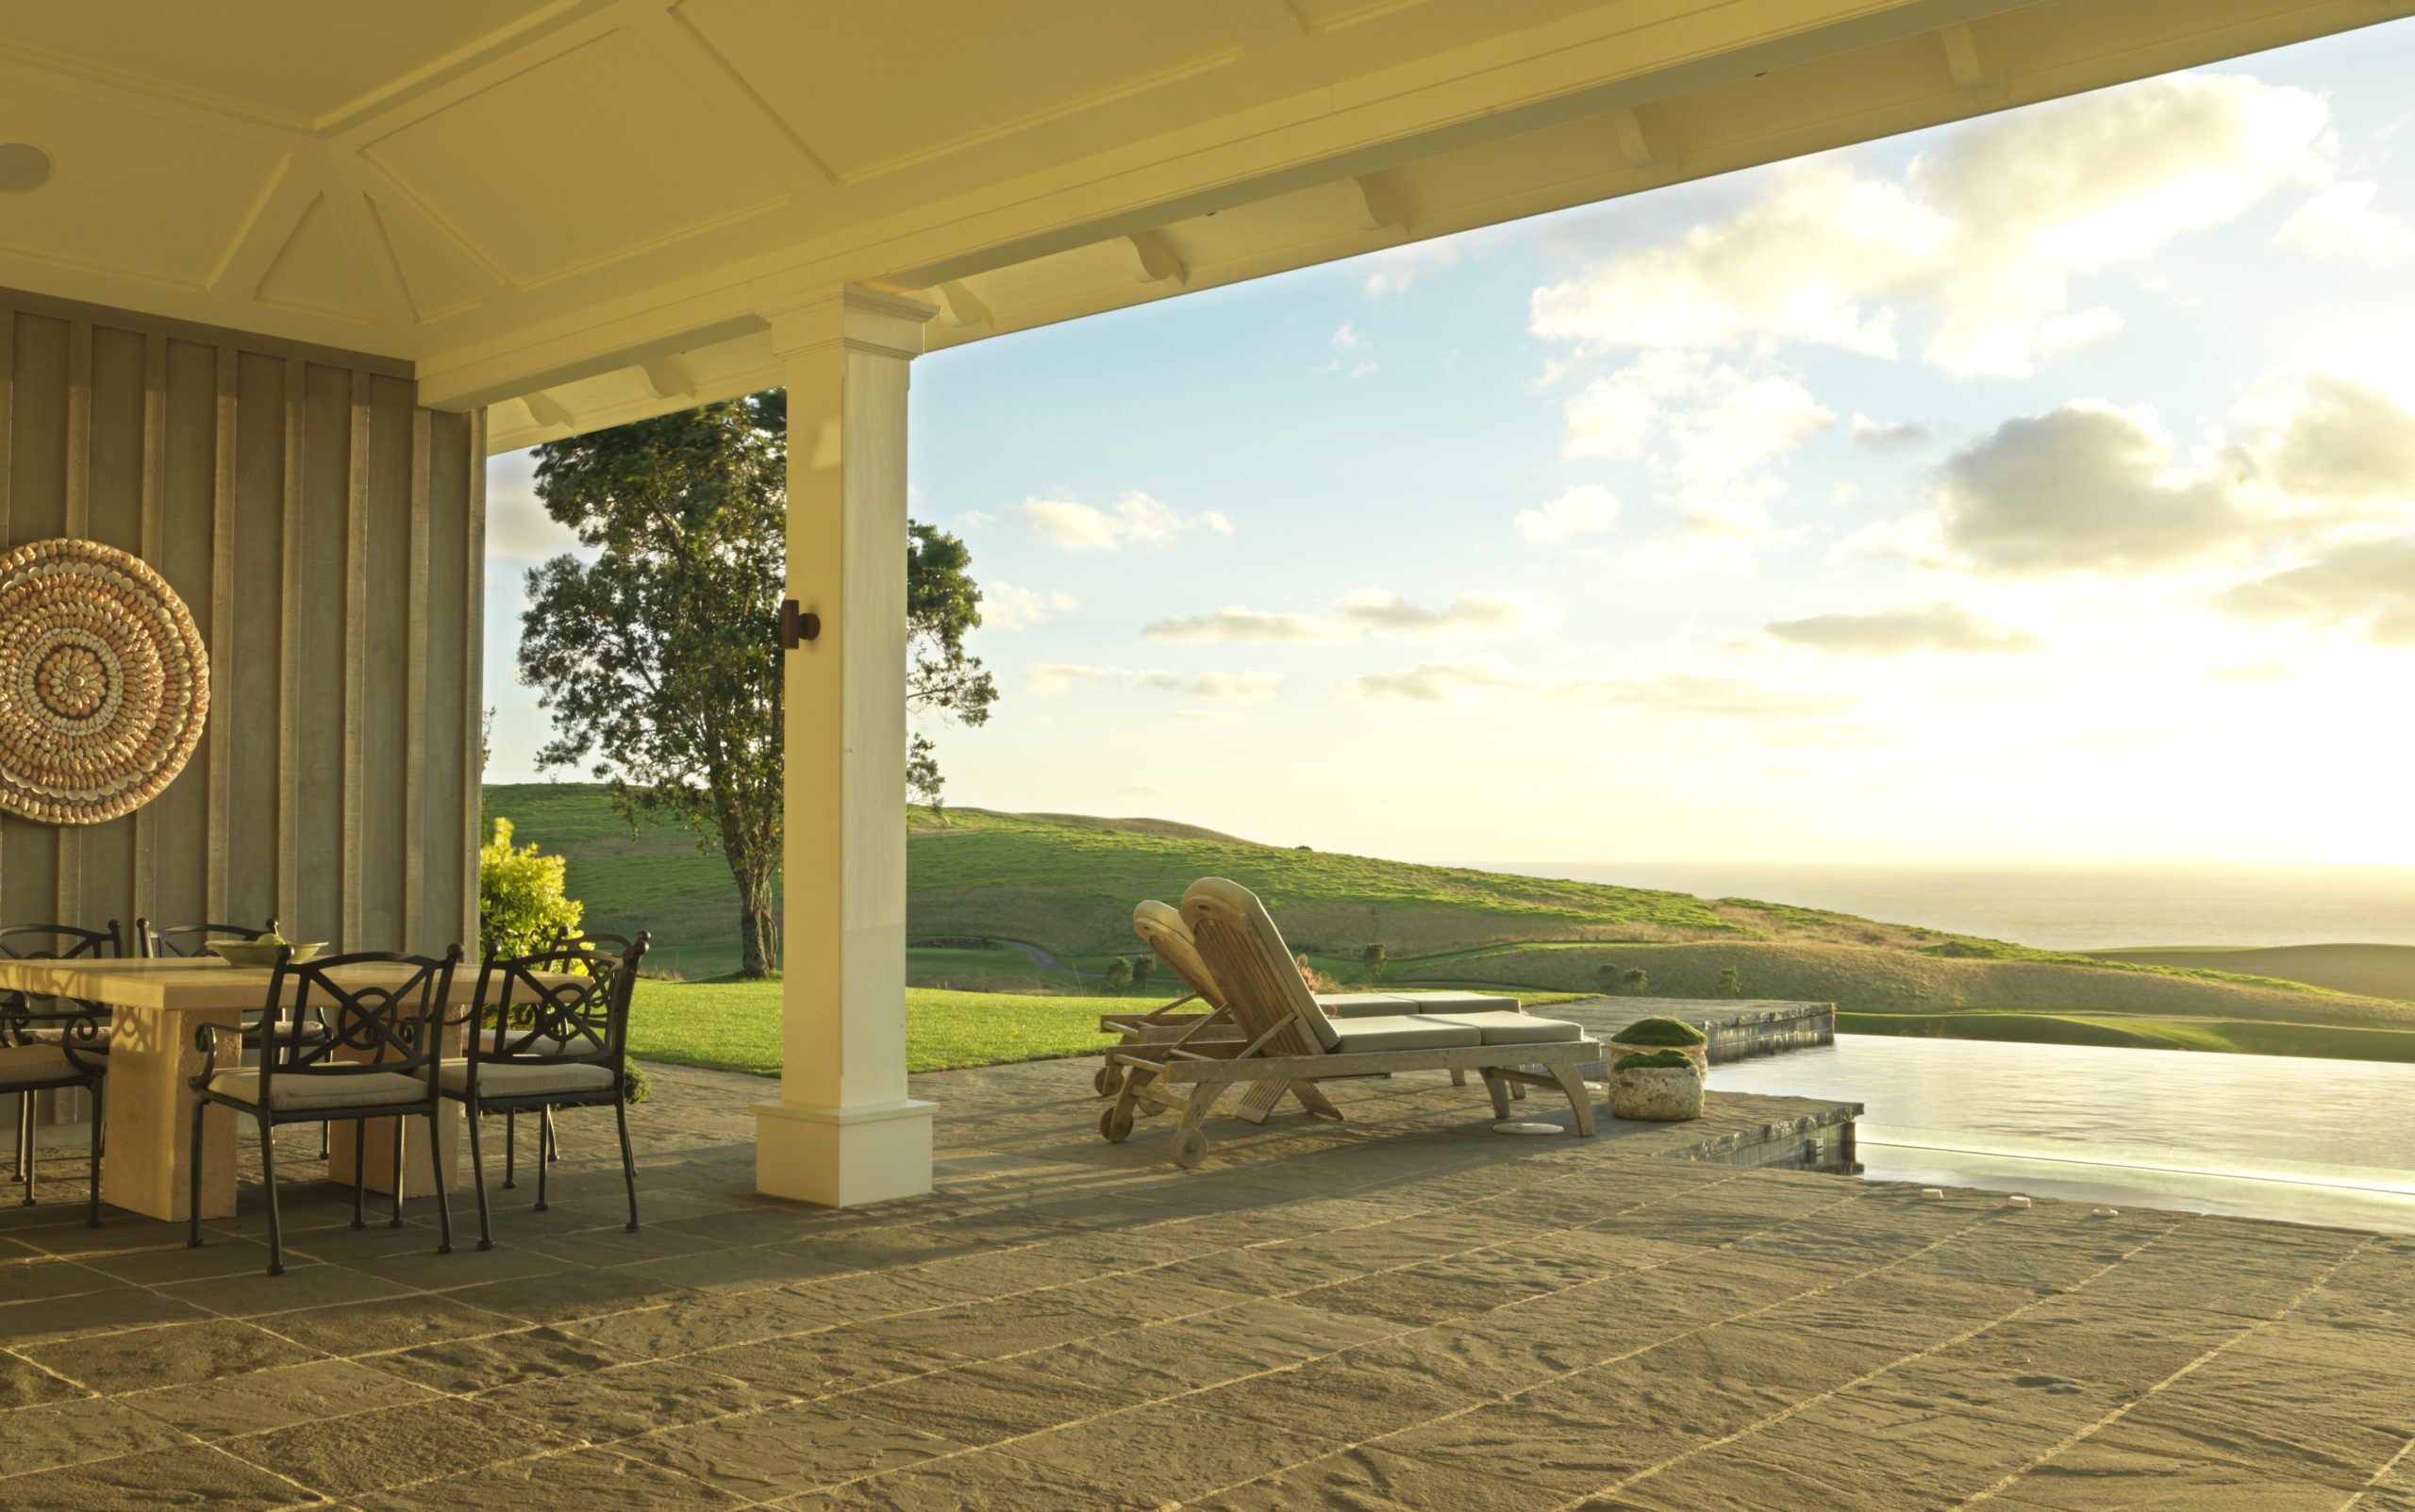 View from the deck of a room at Kauri Cliffs overlooking green hills.